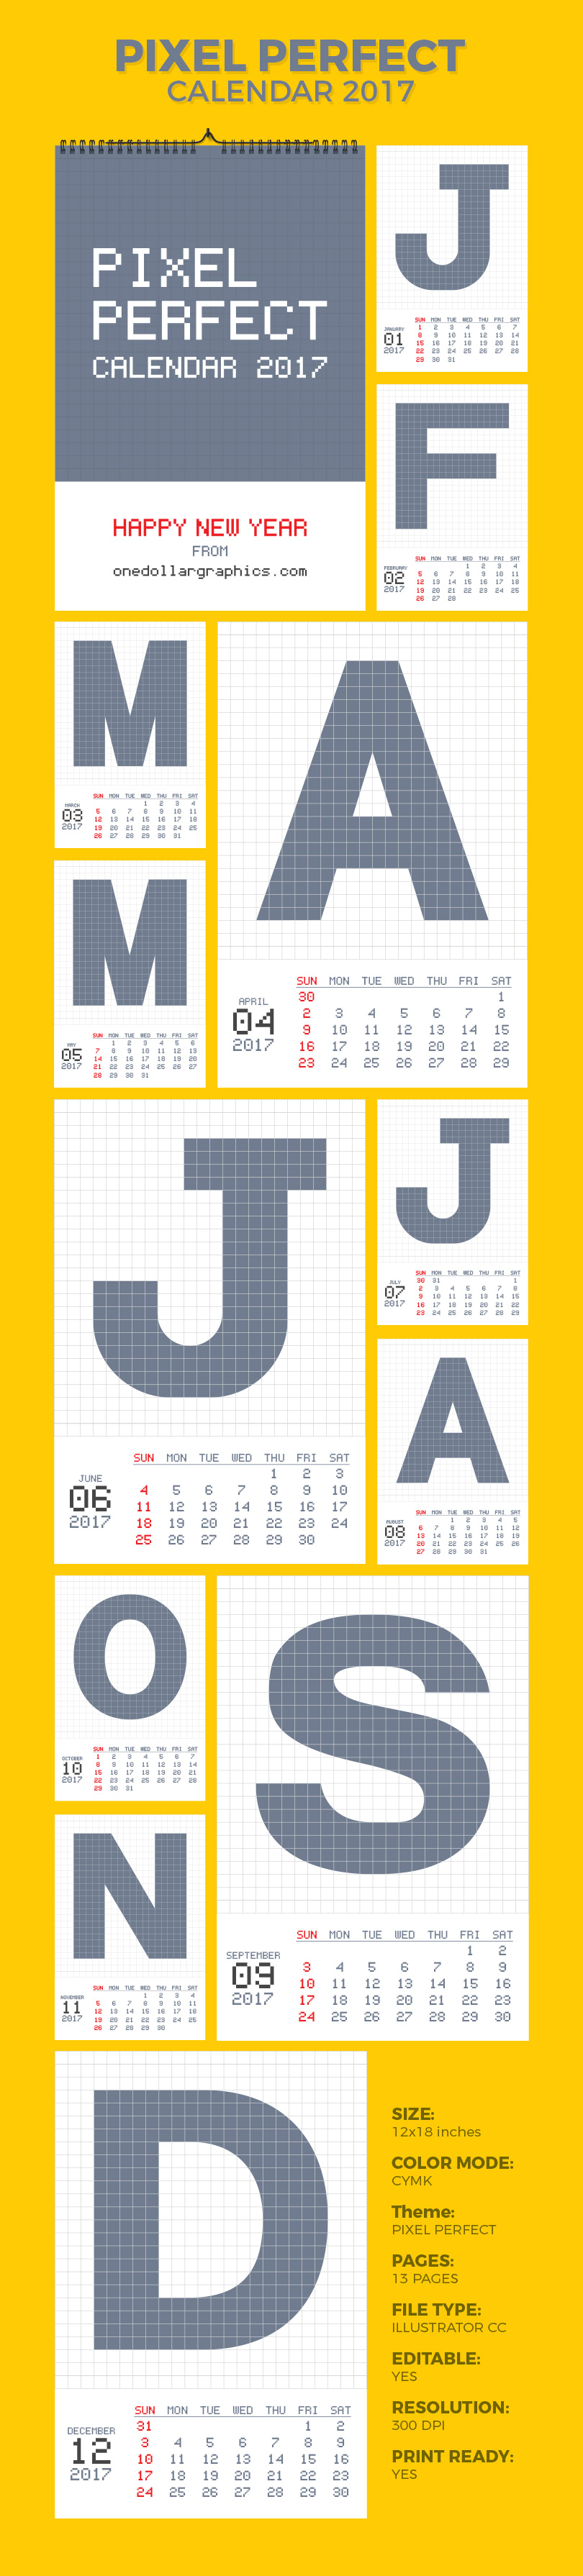 pixel-perfect-calendar-2017